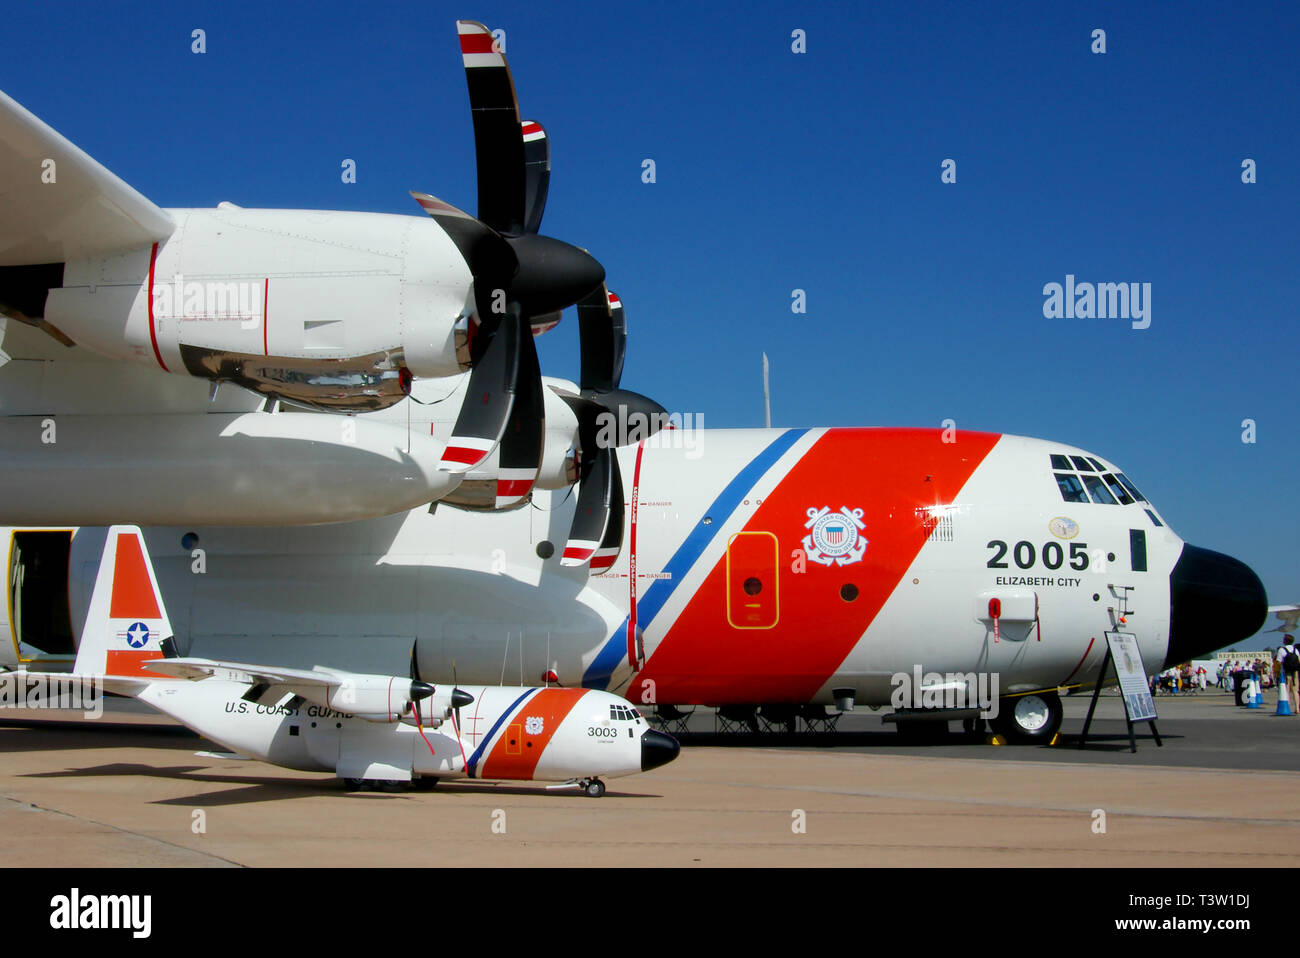 United States Coast Guard Lockheed HC-130J Hercules transport plane with similar model plane on display at RAF Fairford airshow. Space for copy - Stock Image